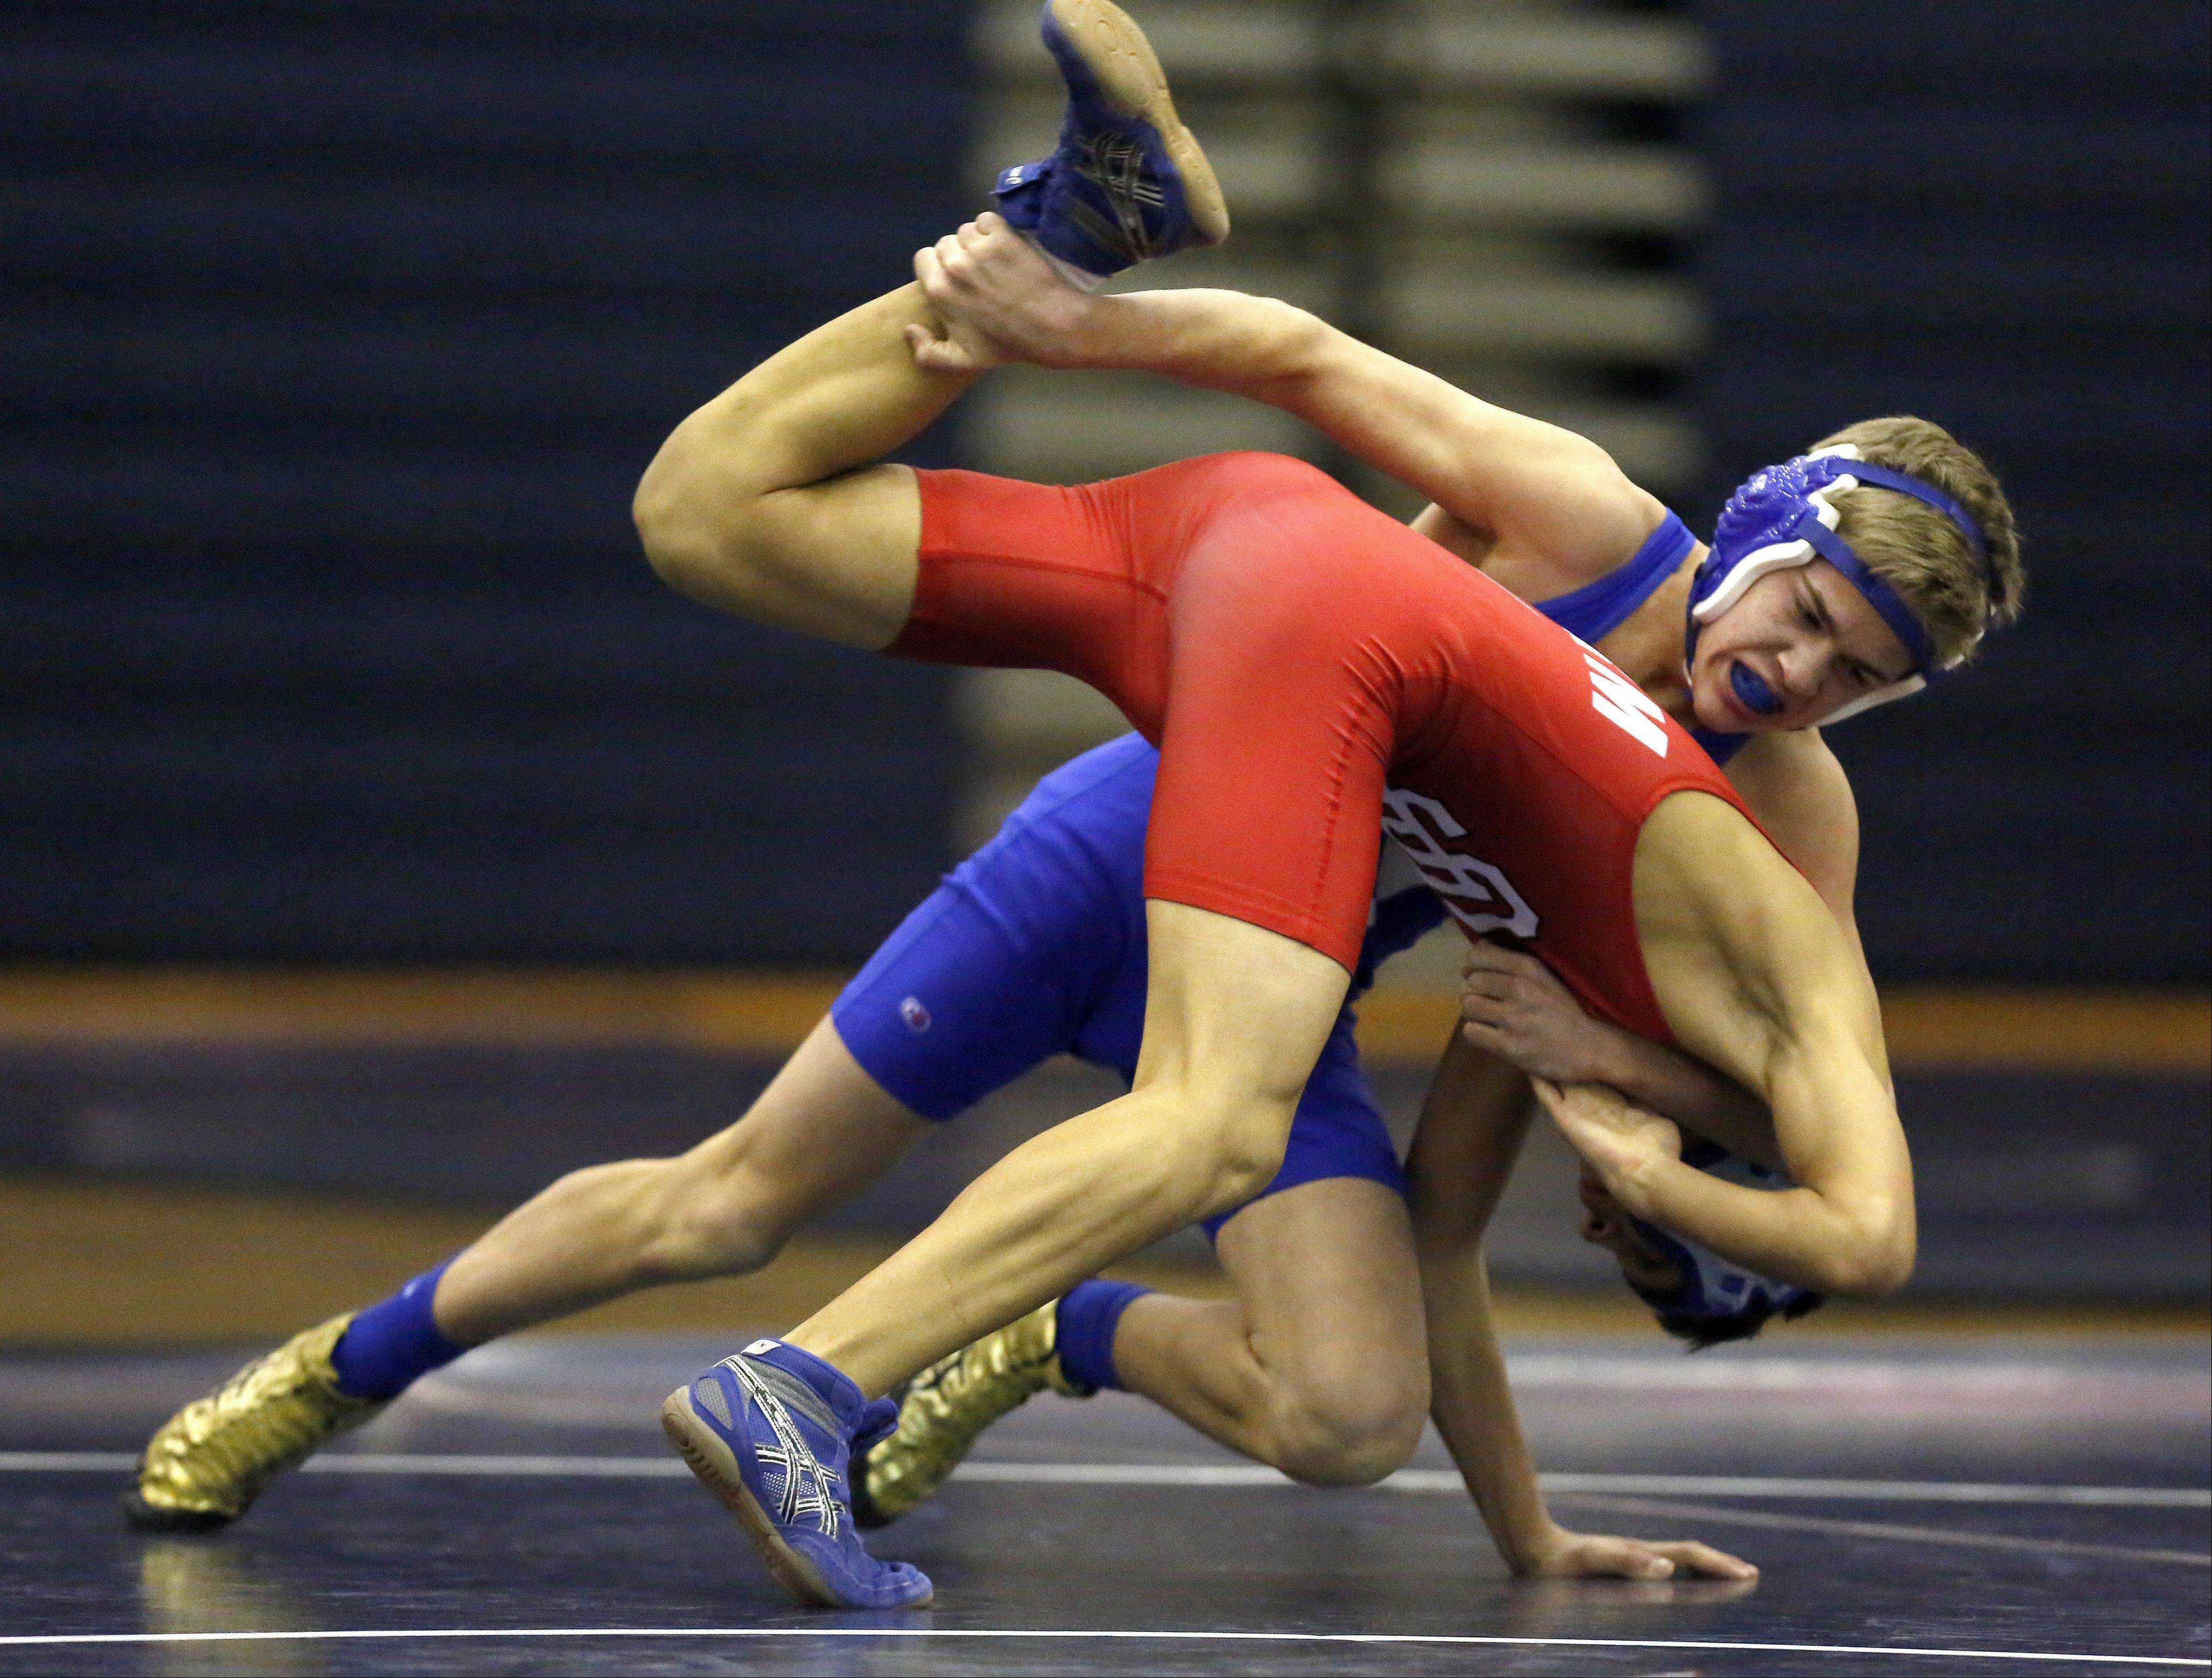 South Elgin's Jordan Hoke-Ruiz and Geneva's Nick Anderson battle at the 120 weight class during wrestling at South Elgin Saturday.